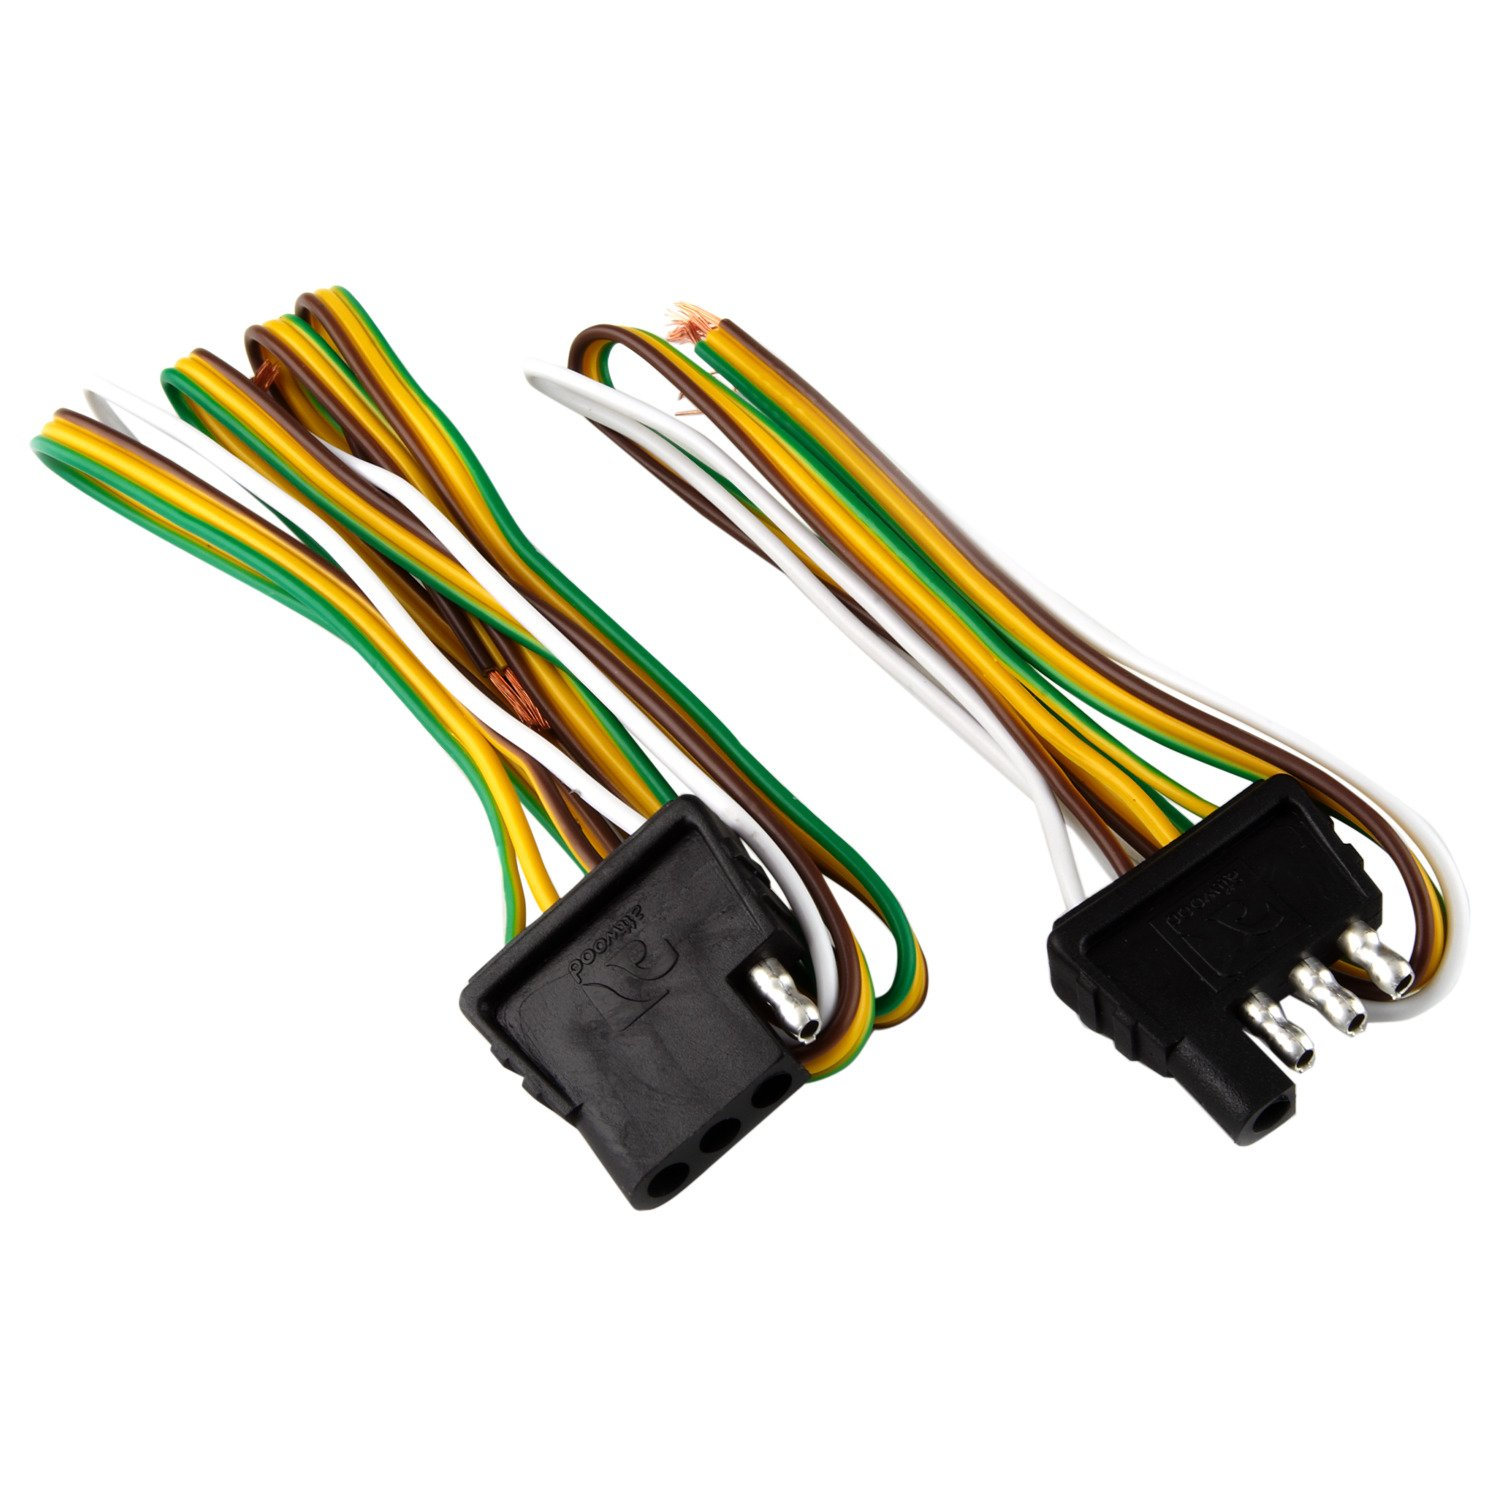 small resolution of attwood 4 way flat wiring harness kit for vehicles and trailers 4 way flat trailer wiring harness